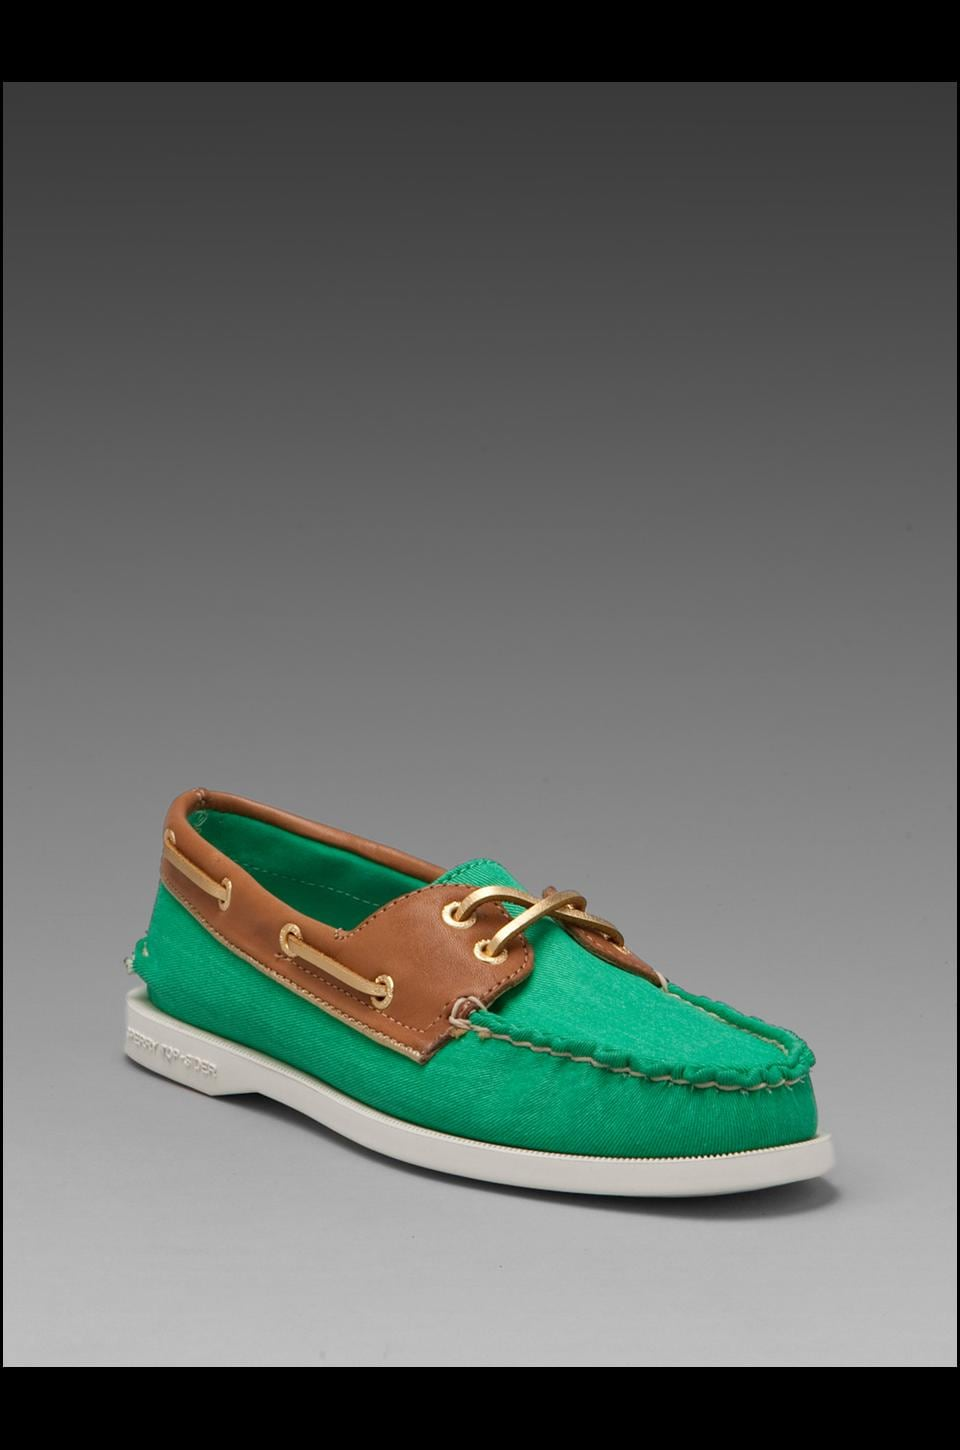 Sperry Top-Sider 2-Eye in Green Salt Wash